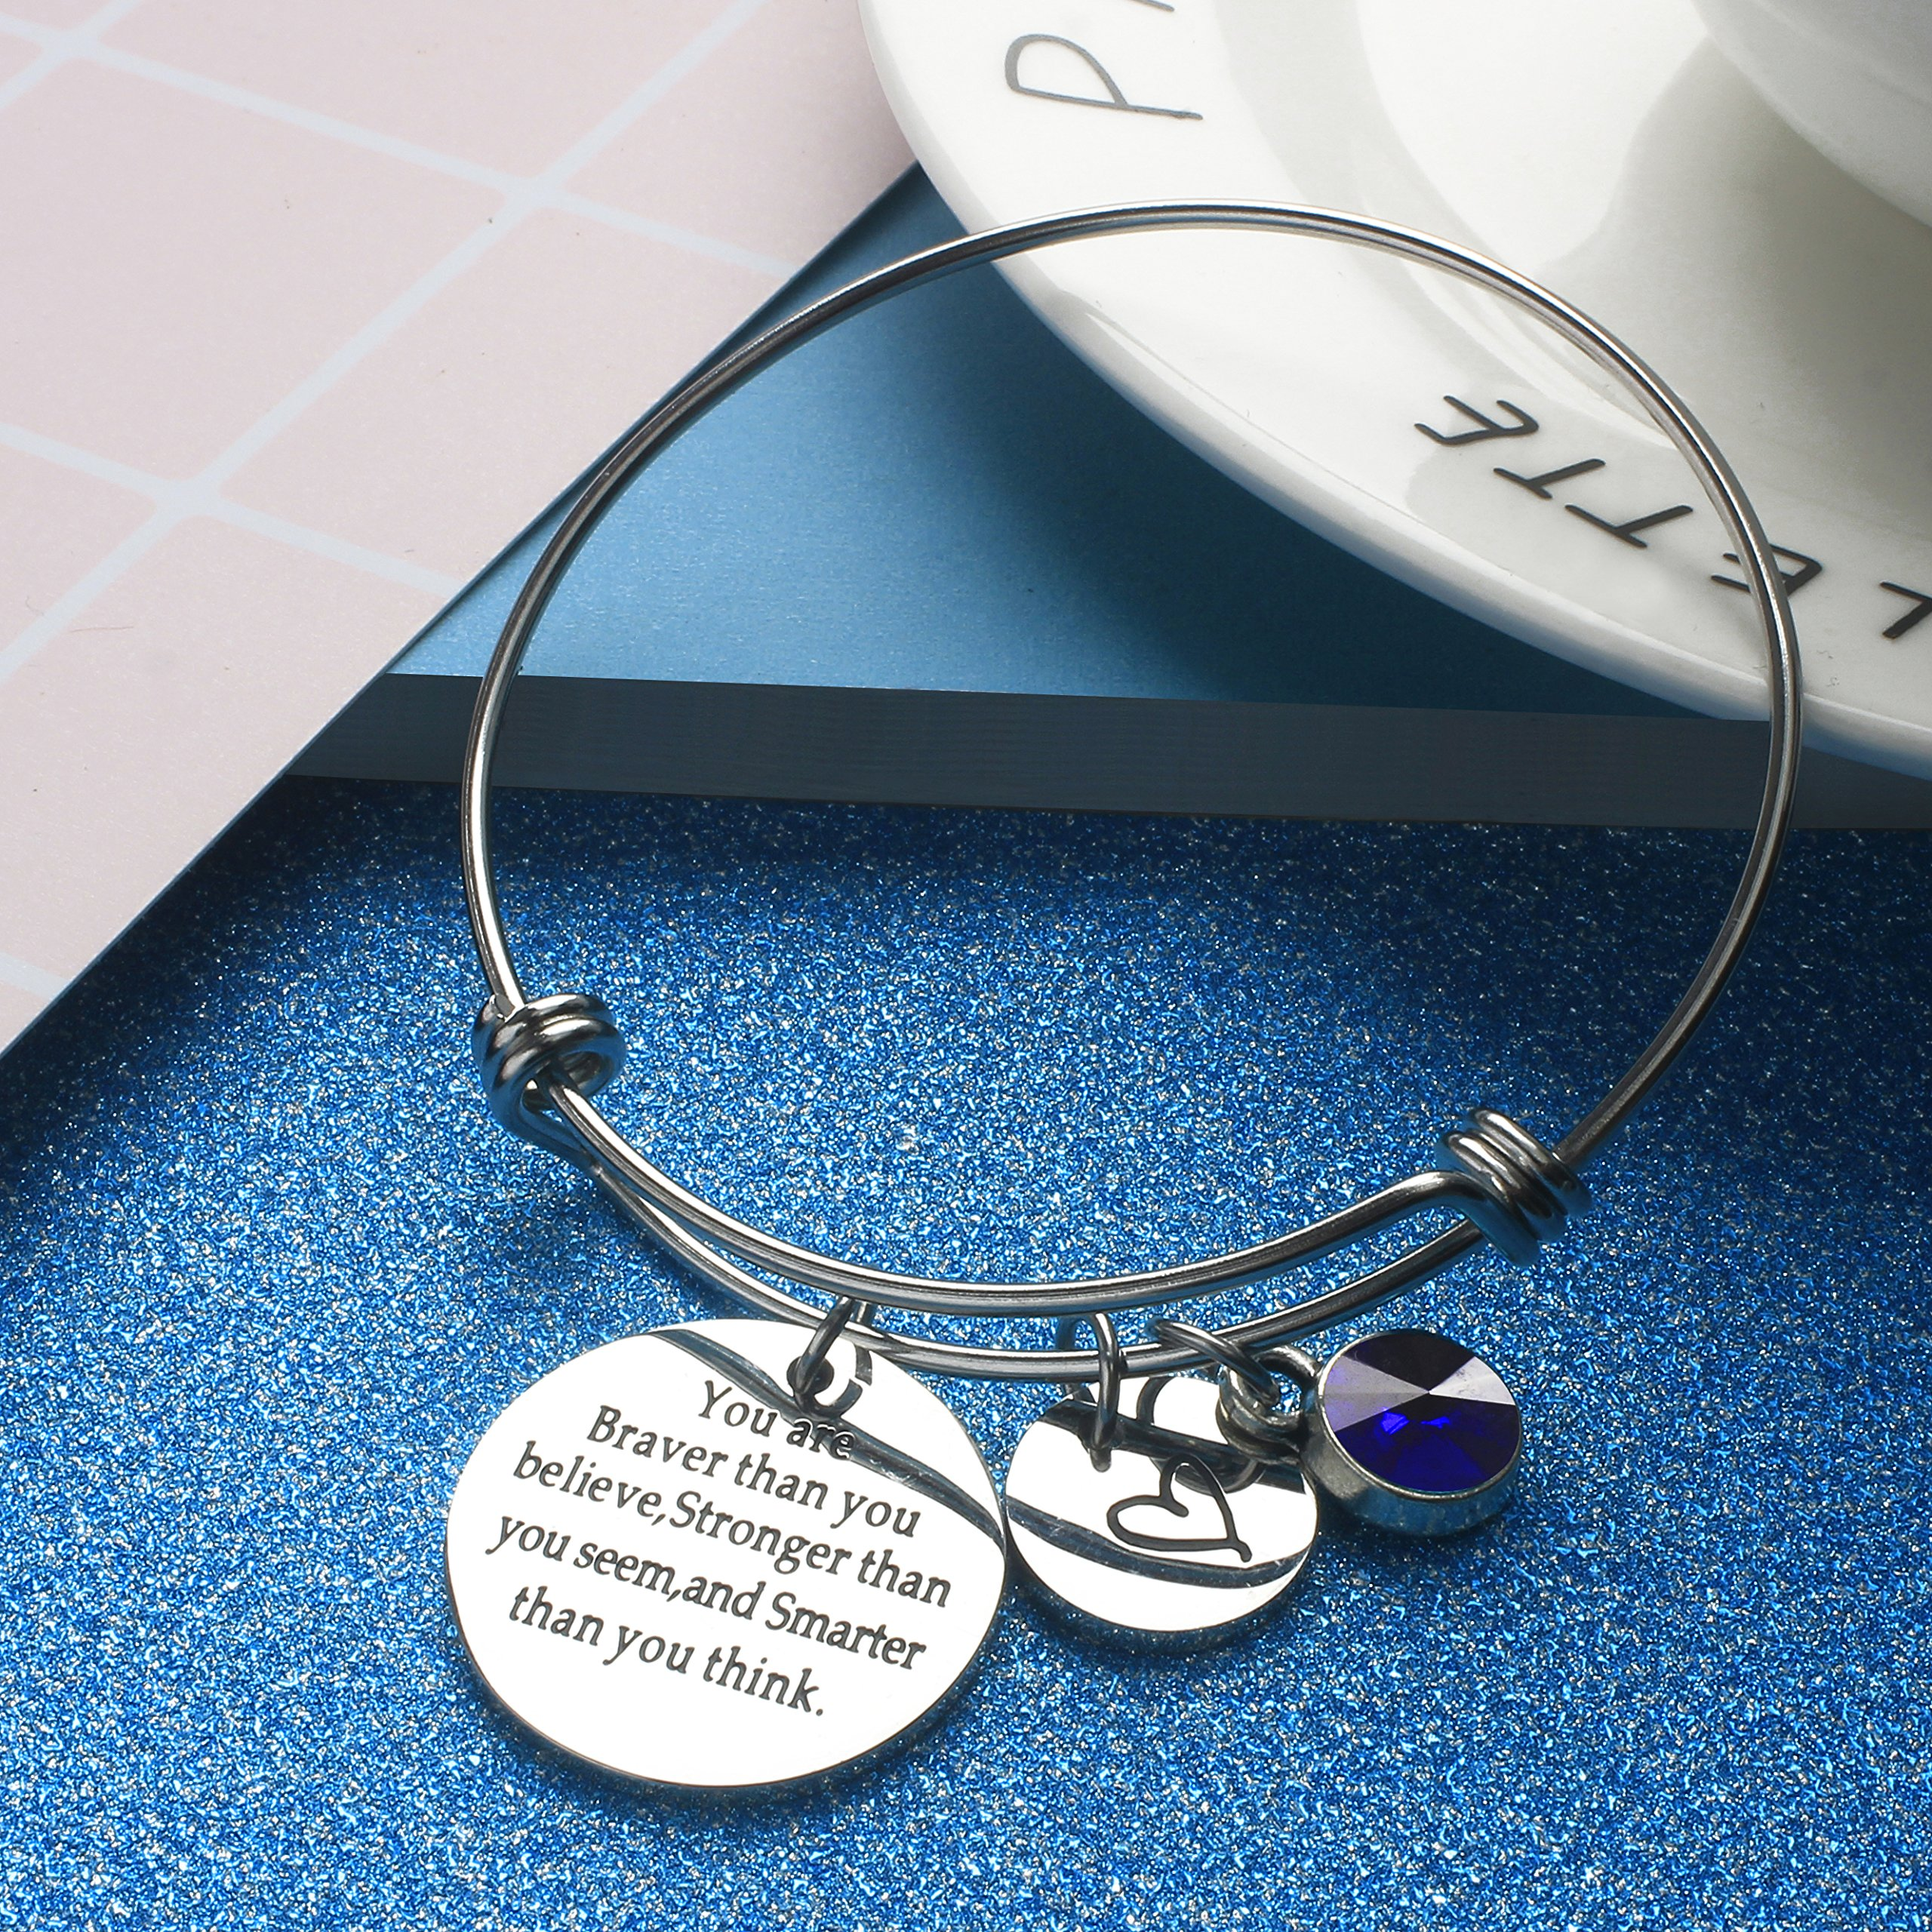 Angel's Draw Home You Are Braver than You Believe Adjustable Bangle Bracelets With 12 Months Color Birthstone for Women Girls Gift (Sapphire- September) by Angel's Draw Home (Image #4)